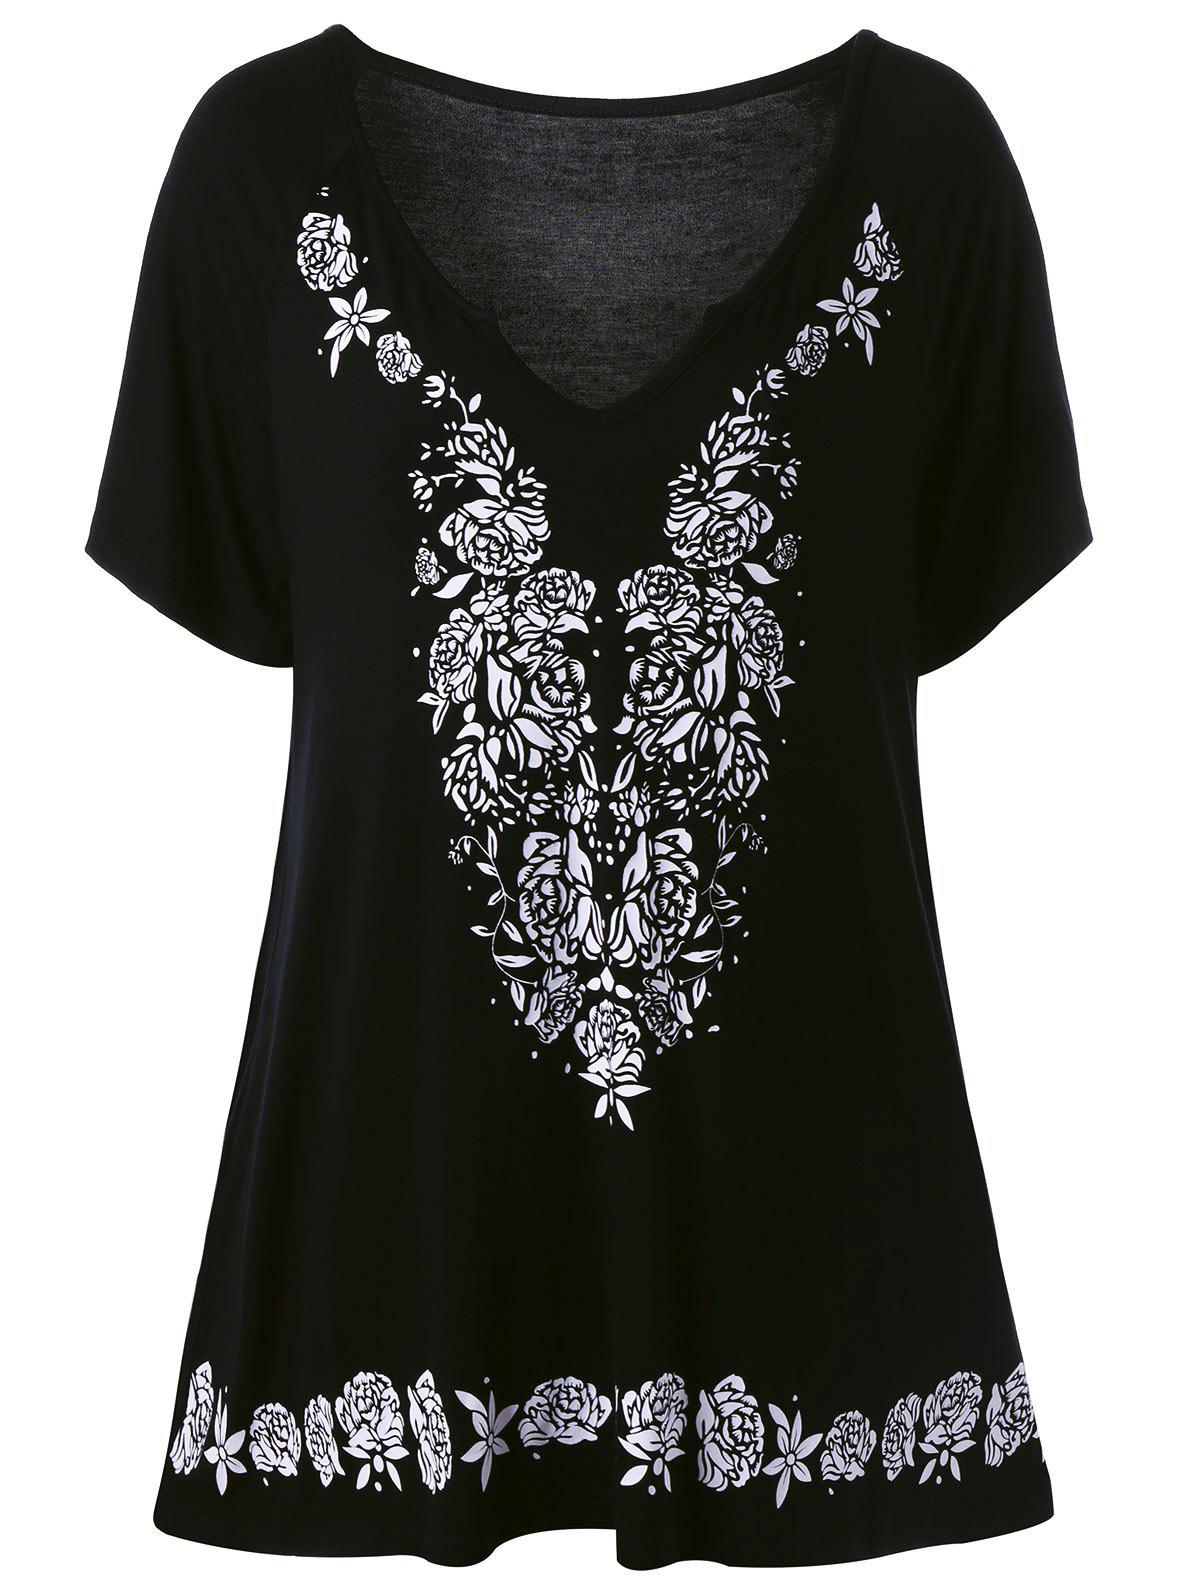 Plus Size Rose Tunic Flowing TopWOMEN<br><br>Size: XL; Color: BLACK; Material: Cotton Blends; Shirt Length: Long; Sleeve Length: Short; Collar: V-Neck; Style: Casual; Season: Summer; Pattern Type: Floral; Weight: 0.4200kg; Package Contents: 1 x Top;